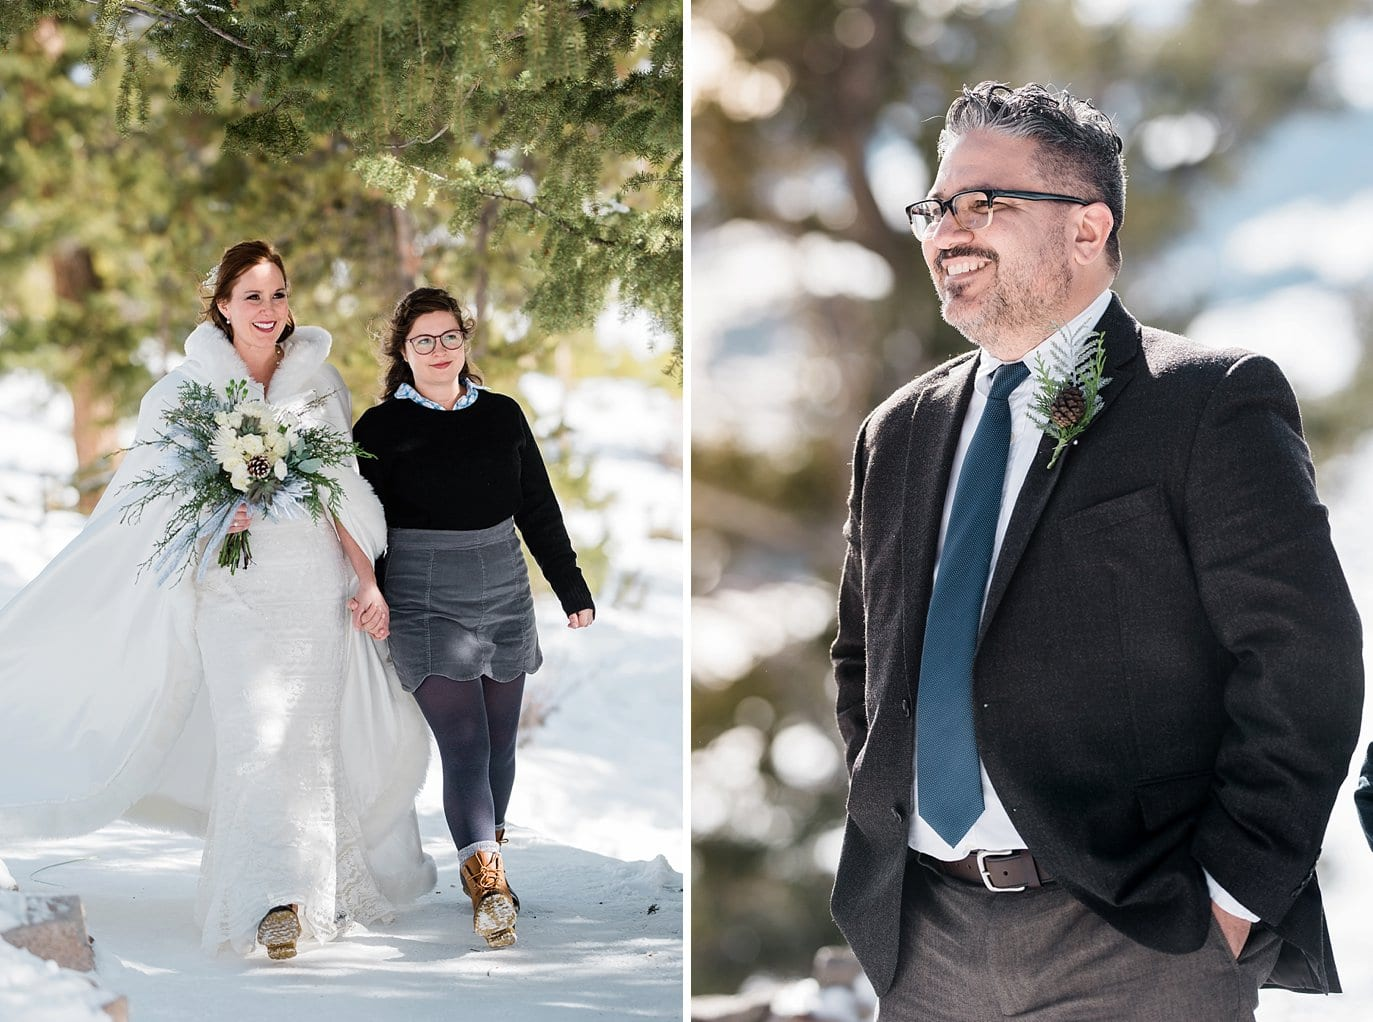 Bride and daughter walk to groom at Sapphire Point Elopement by Vail wedding photographer Jennie Crate Photographer